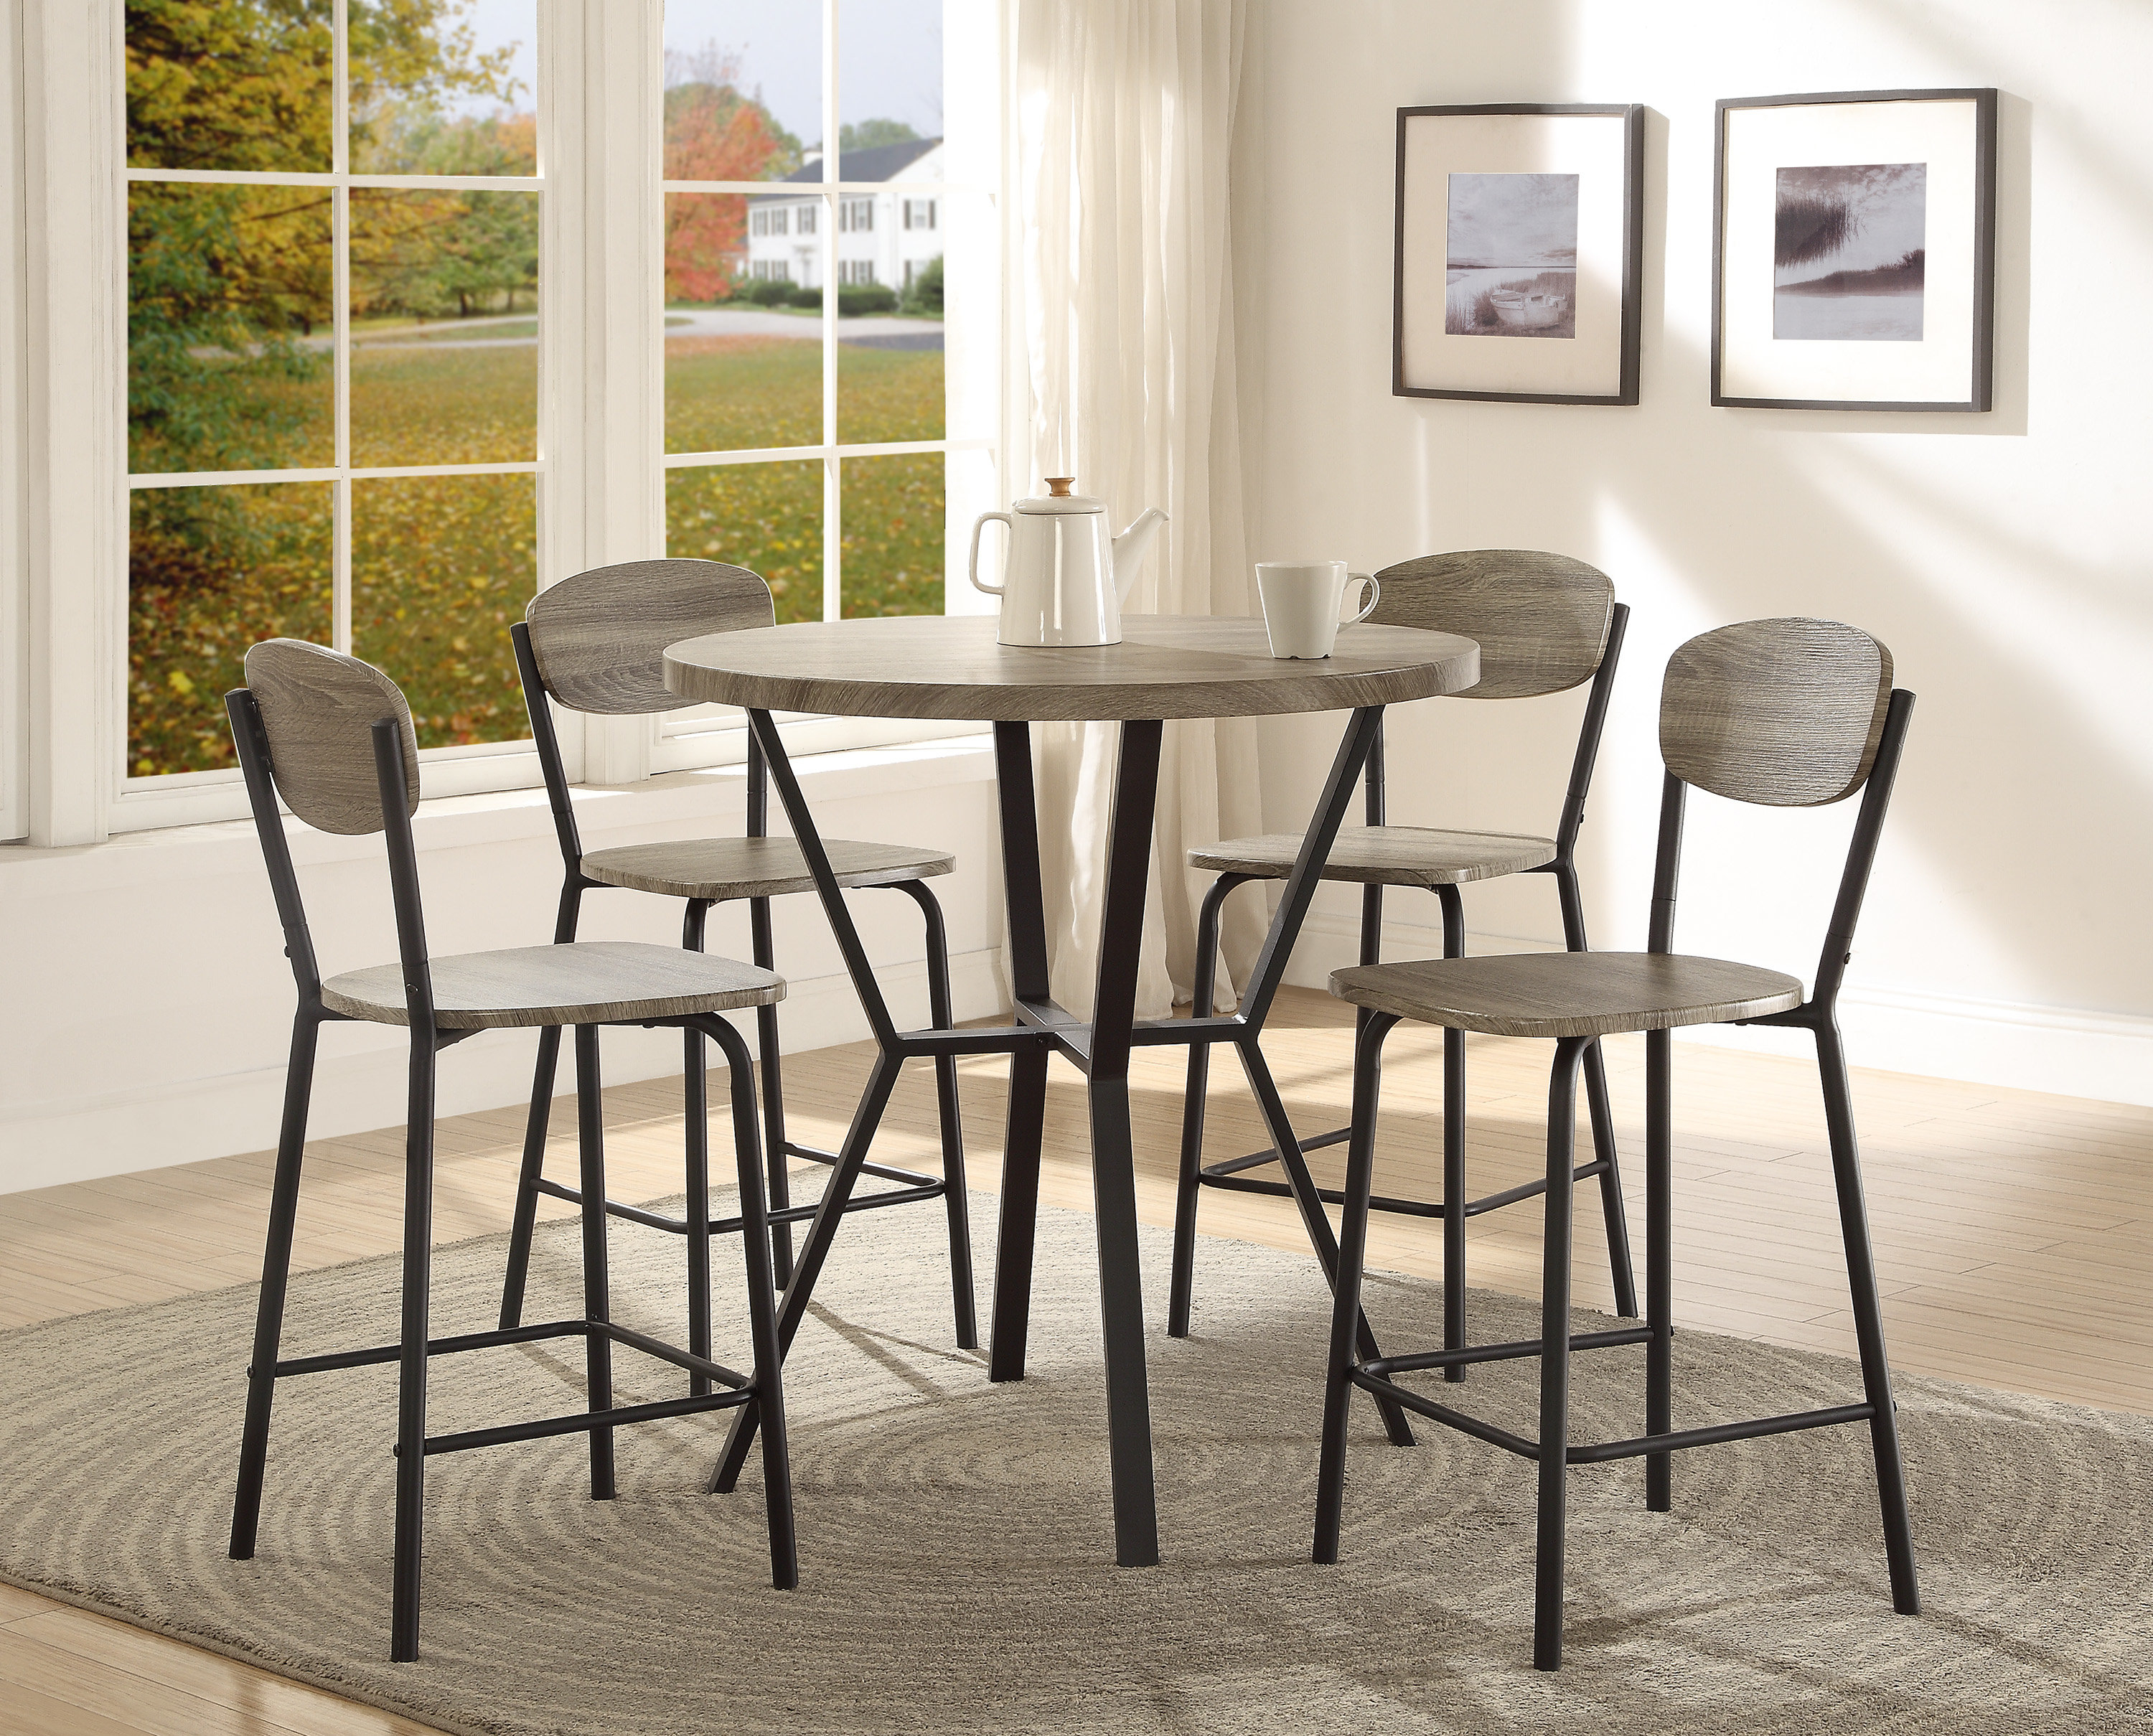 Preferred Felicia 5 Piece Counter Height Dining Set With Regard To Ephraim 5 Piece Dining Sets (View 12 of 20)